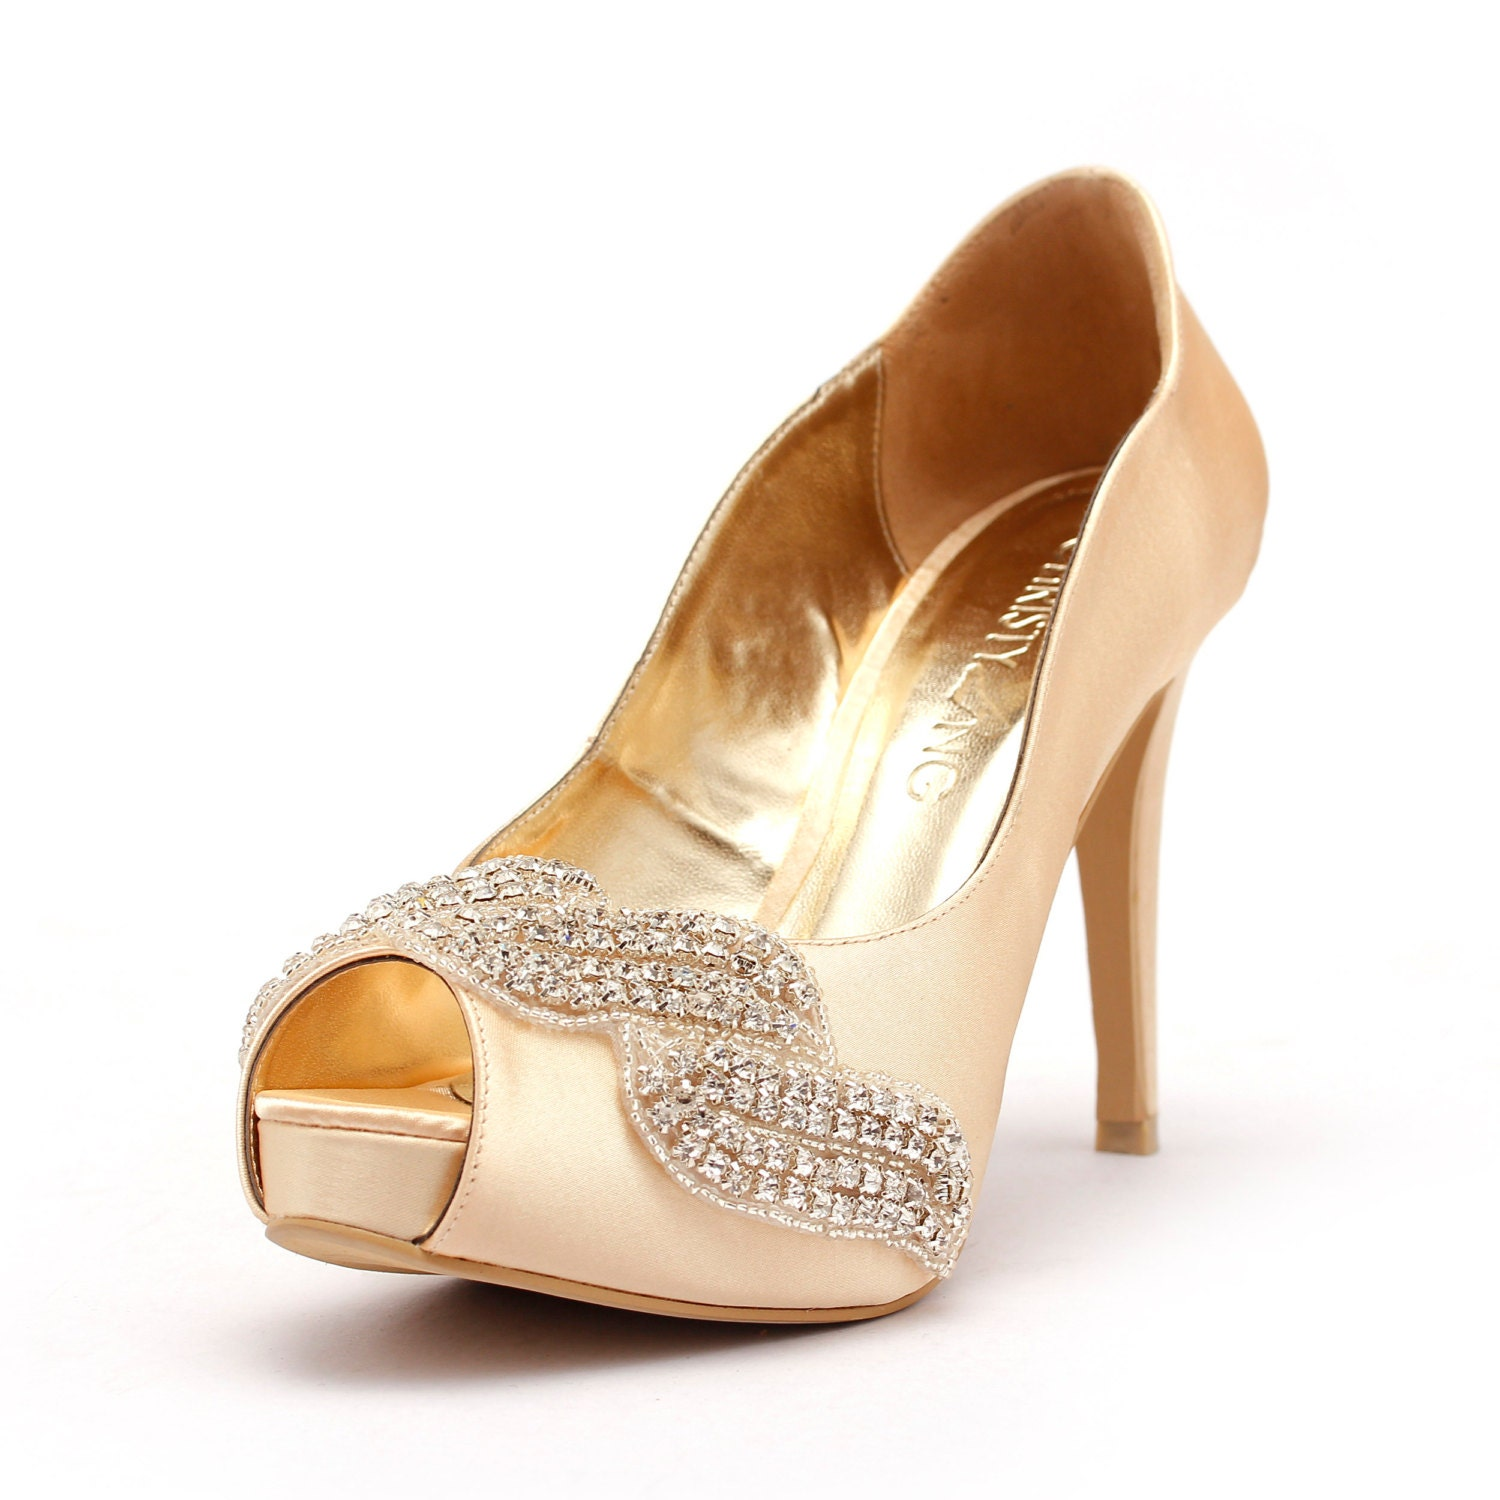 Gold High Heel Bridesmaid Name Champagne Party Wedding: Covet Champagne Peep Toe Wedding Heel With Swarovski Elements